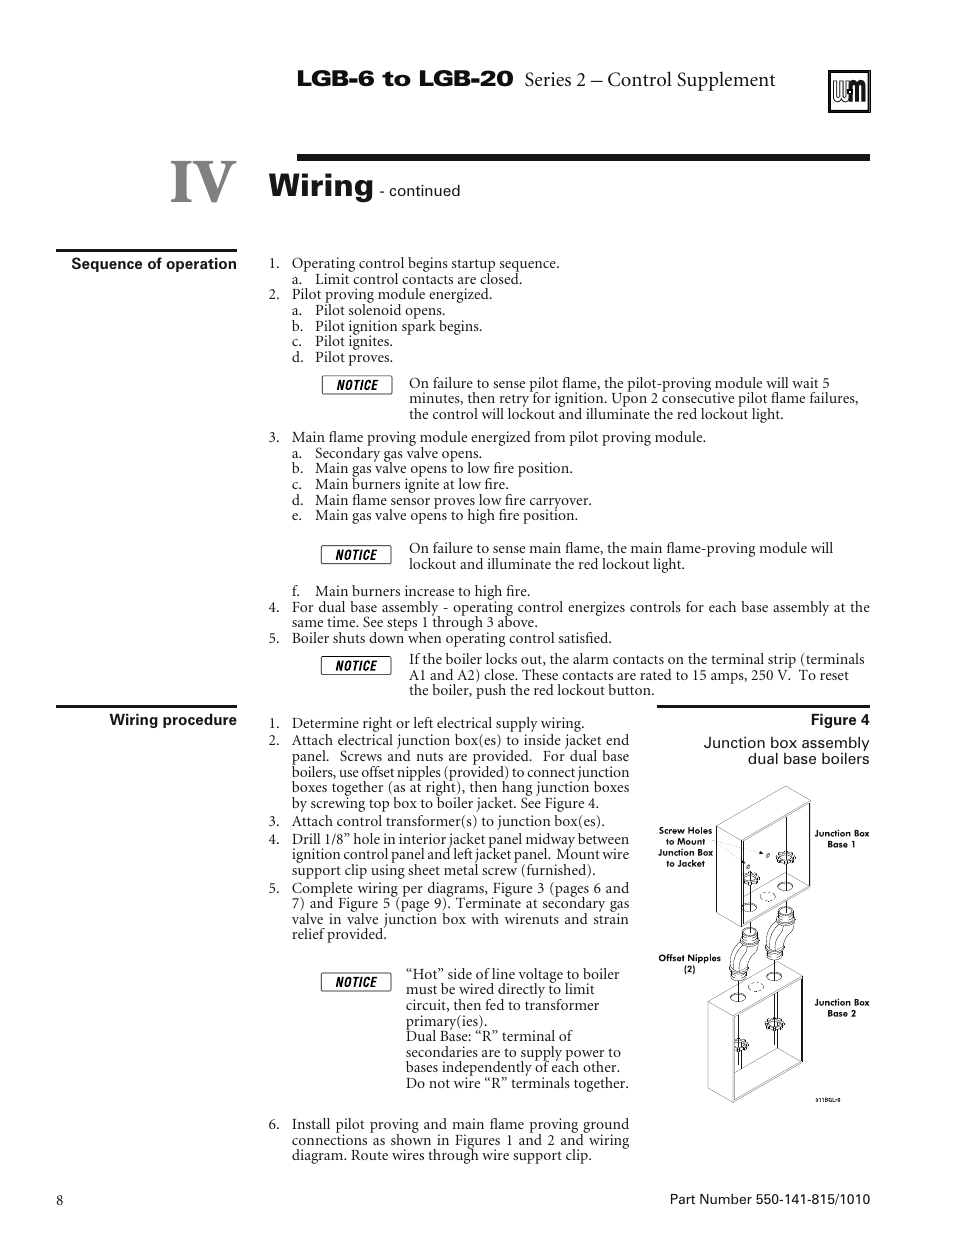 Weil Mclain Lgb Wiring Diagram Free Download Boiler Schematic 6 To 20 User Manual Page 8